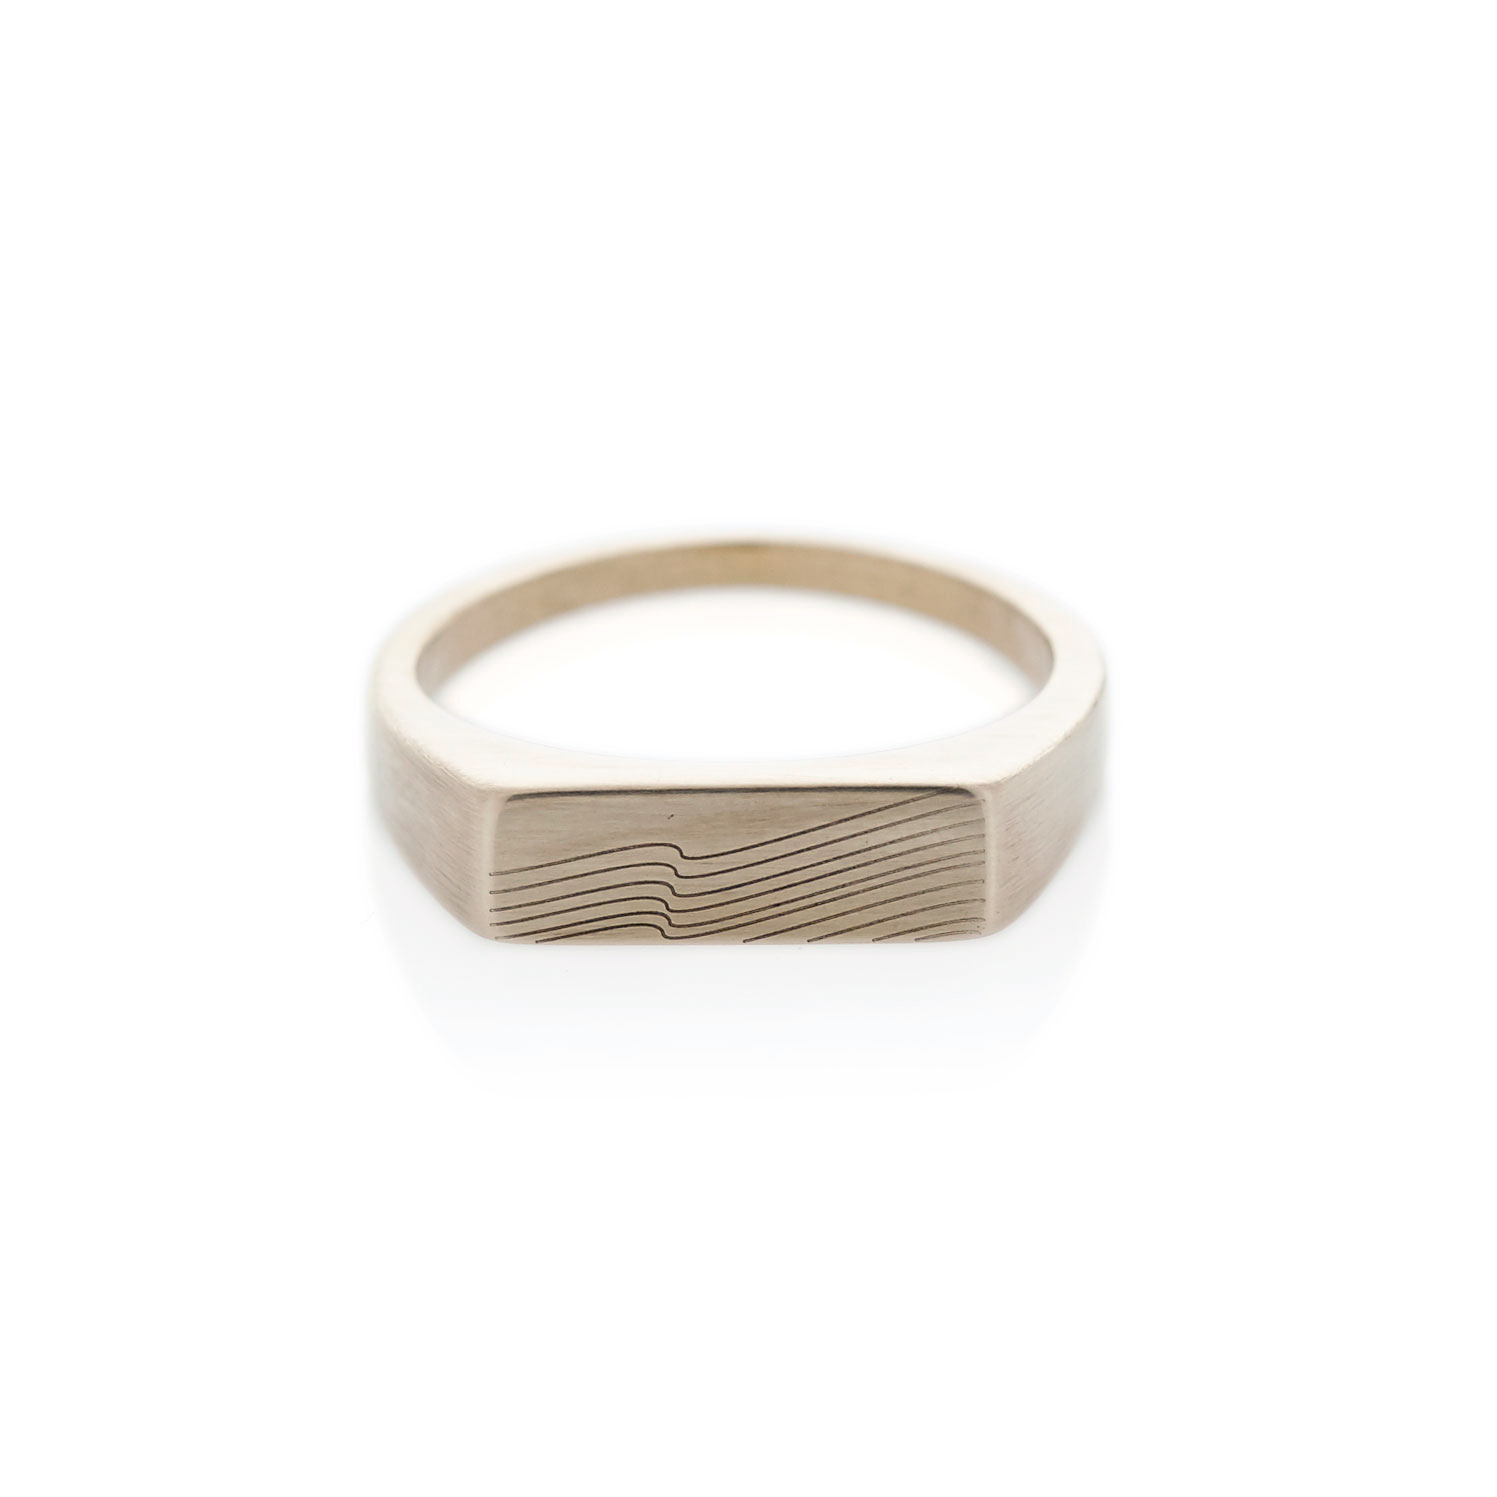 Summit white gold rectangle signet ring